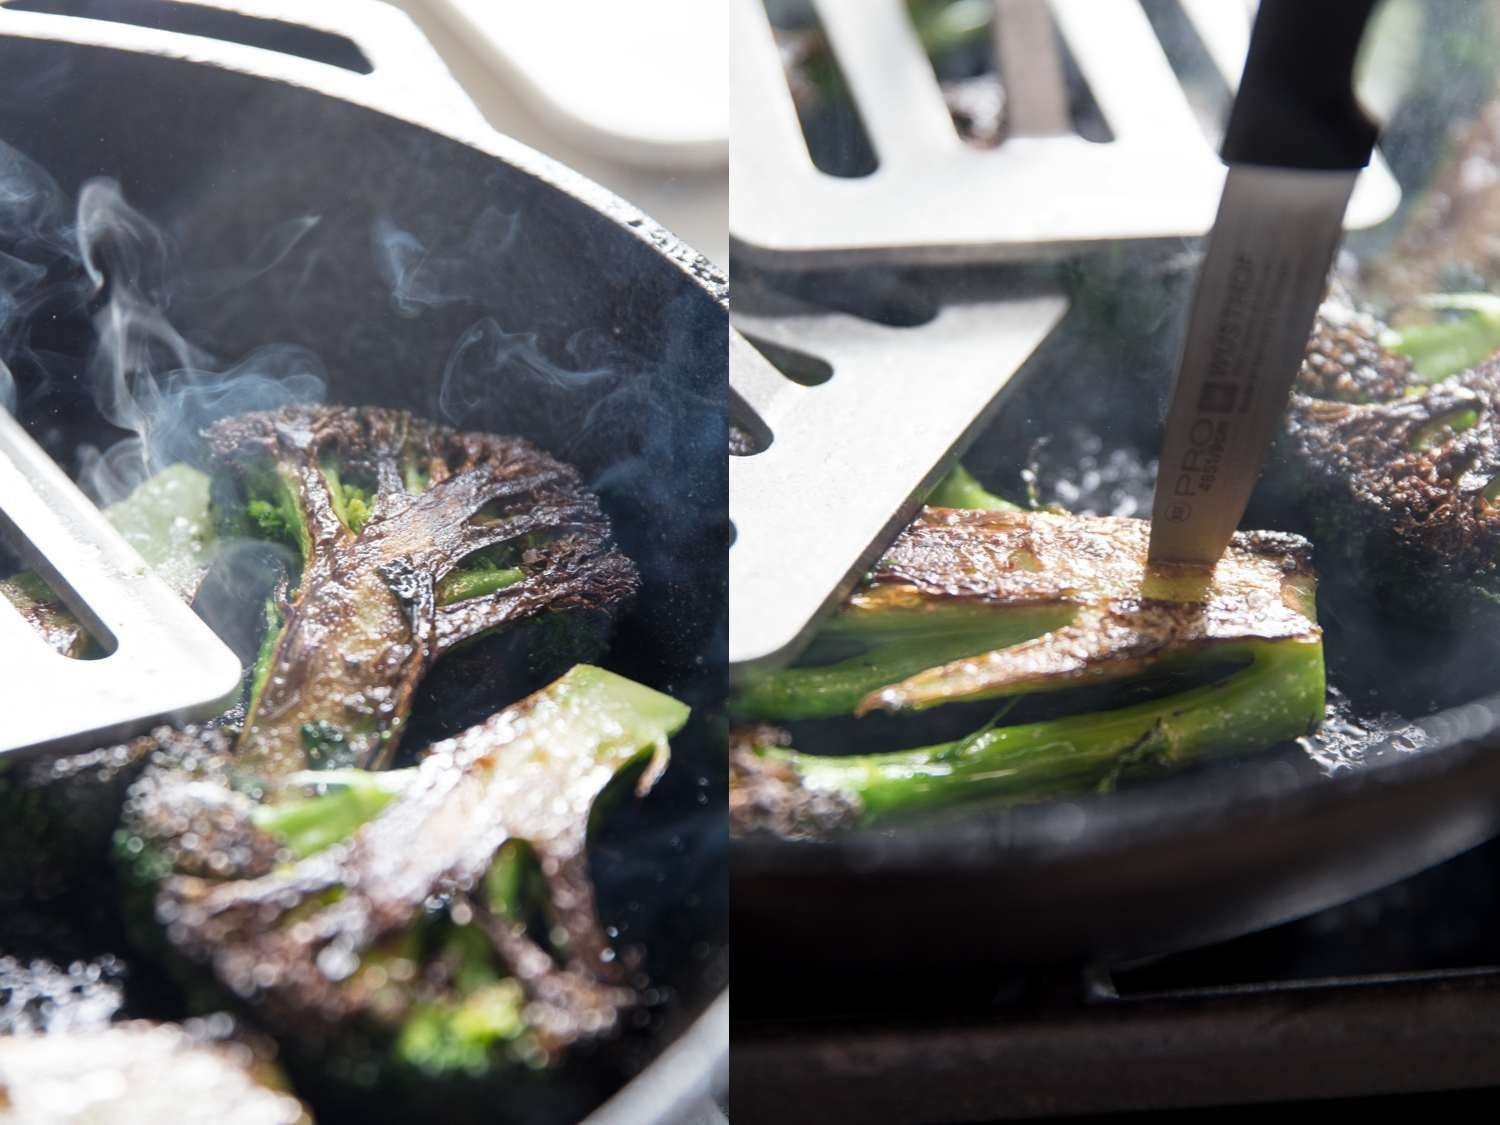 Testing broccoli for doneness with a paring knife.